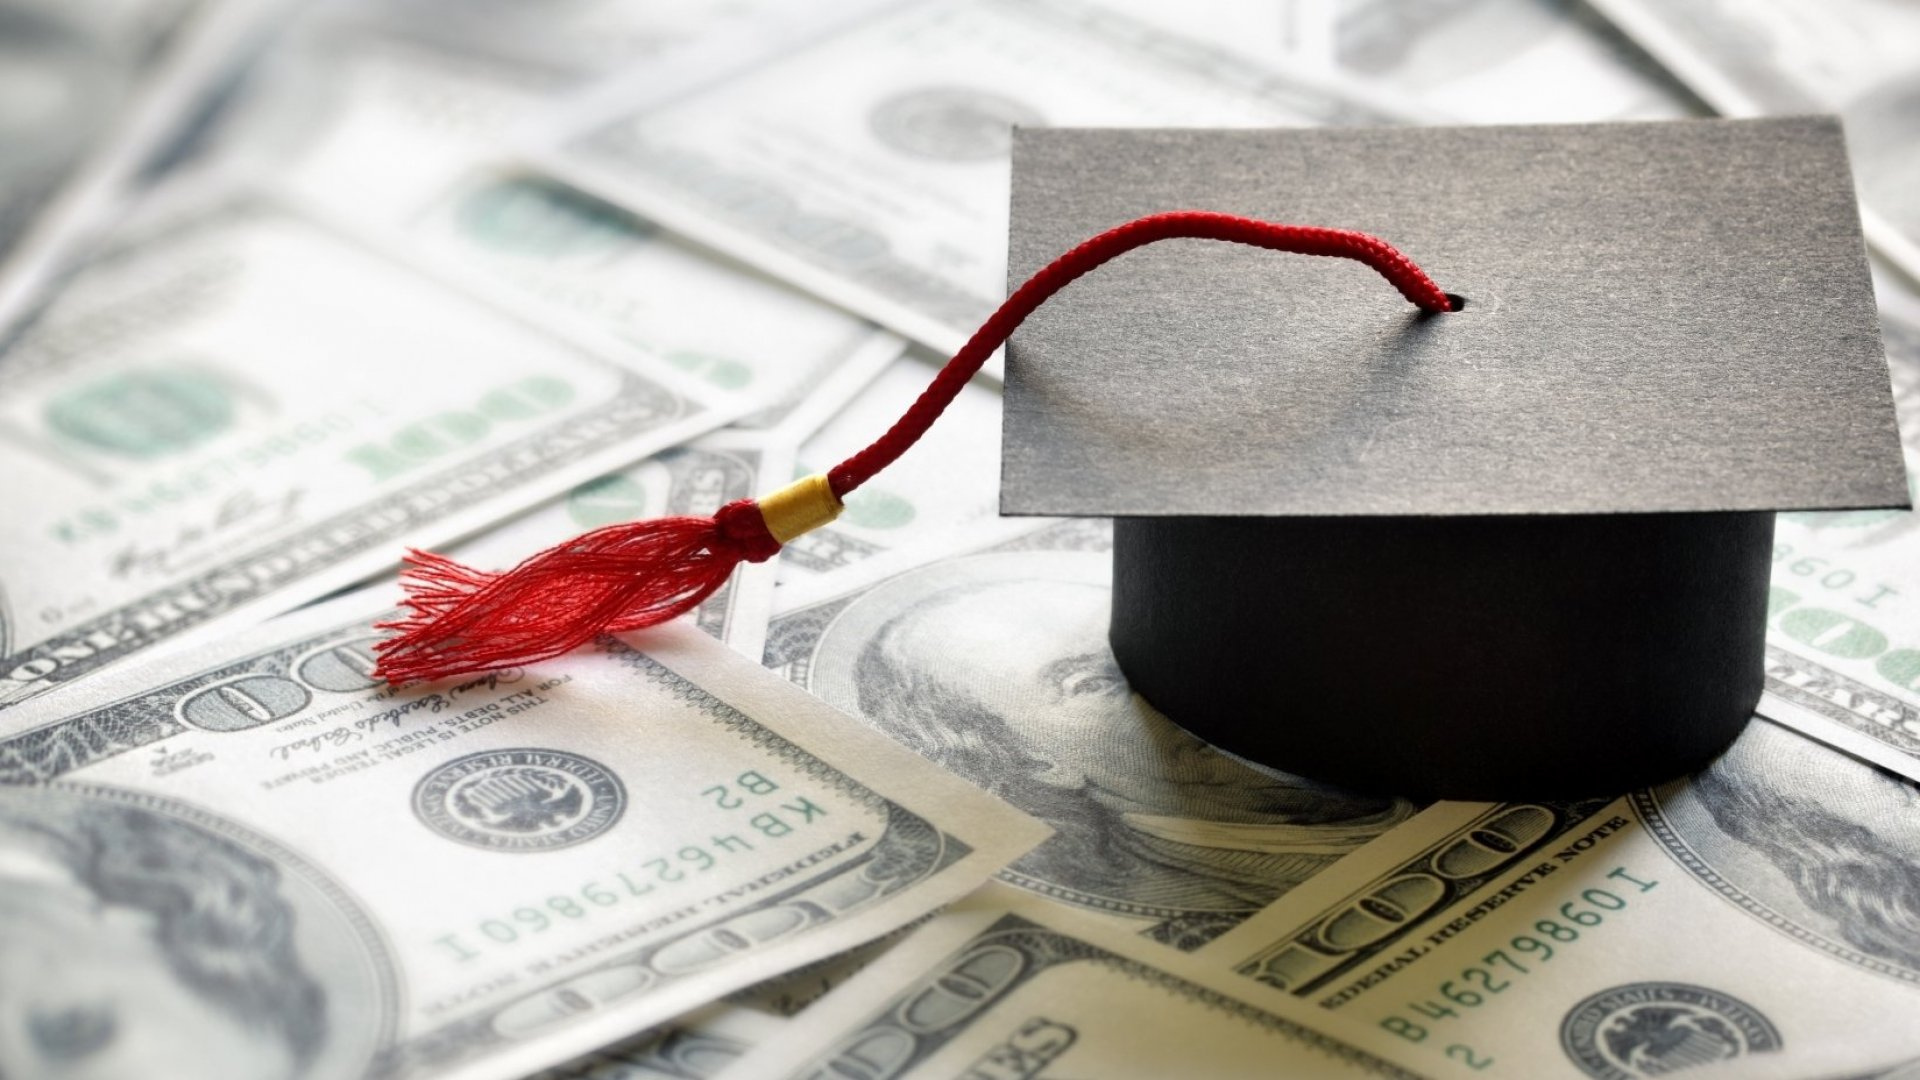 Spend 10 Years at a Public Service Job for Student Loan Forgiveness? 99 Percent Won't Get It